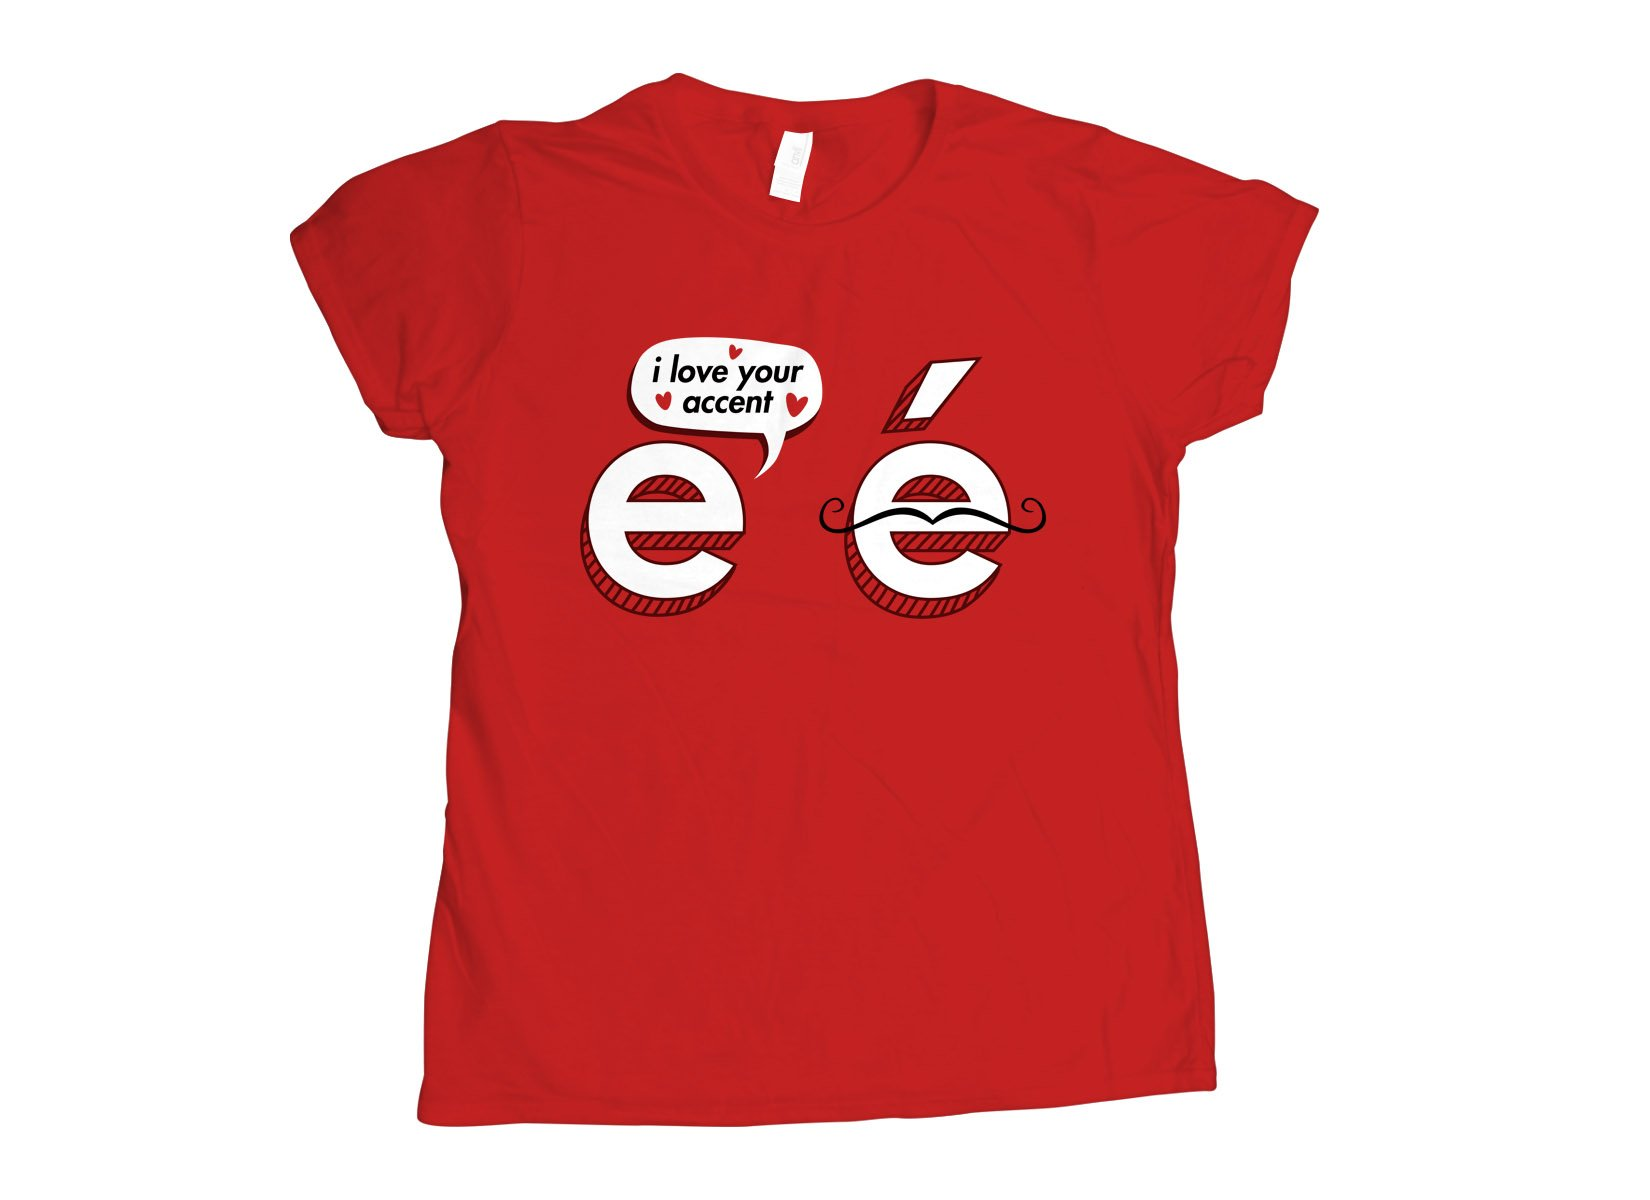 I Love Your Accent on Womens T-Shirt